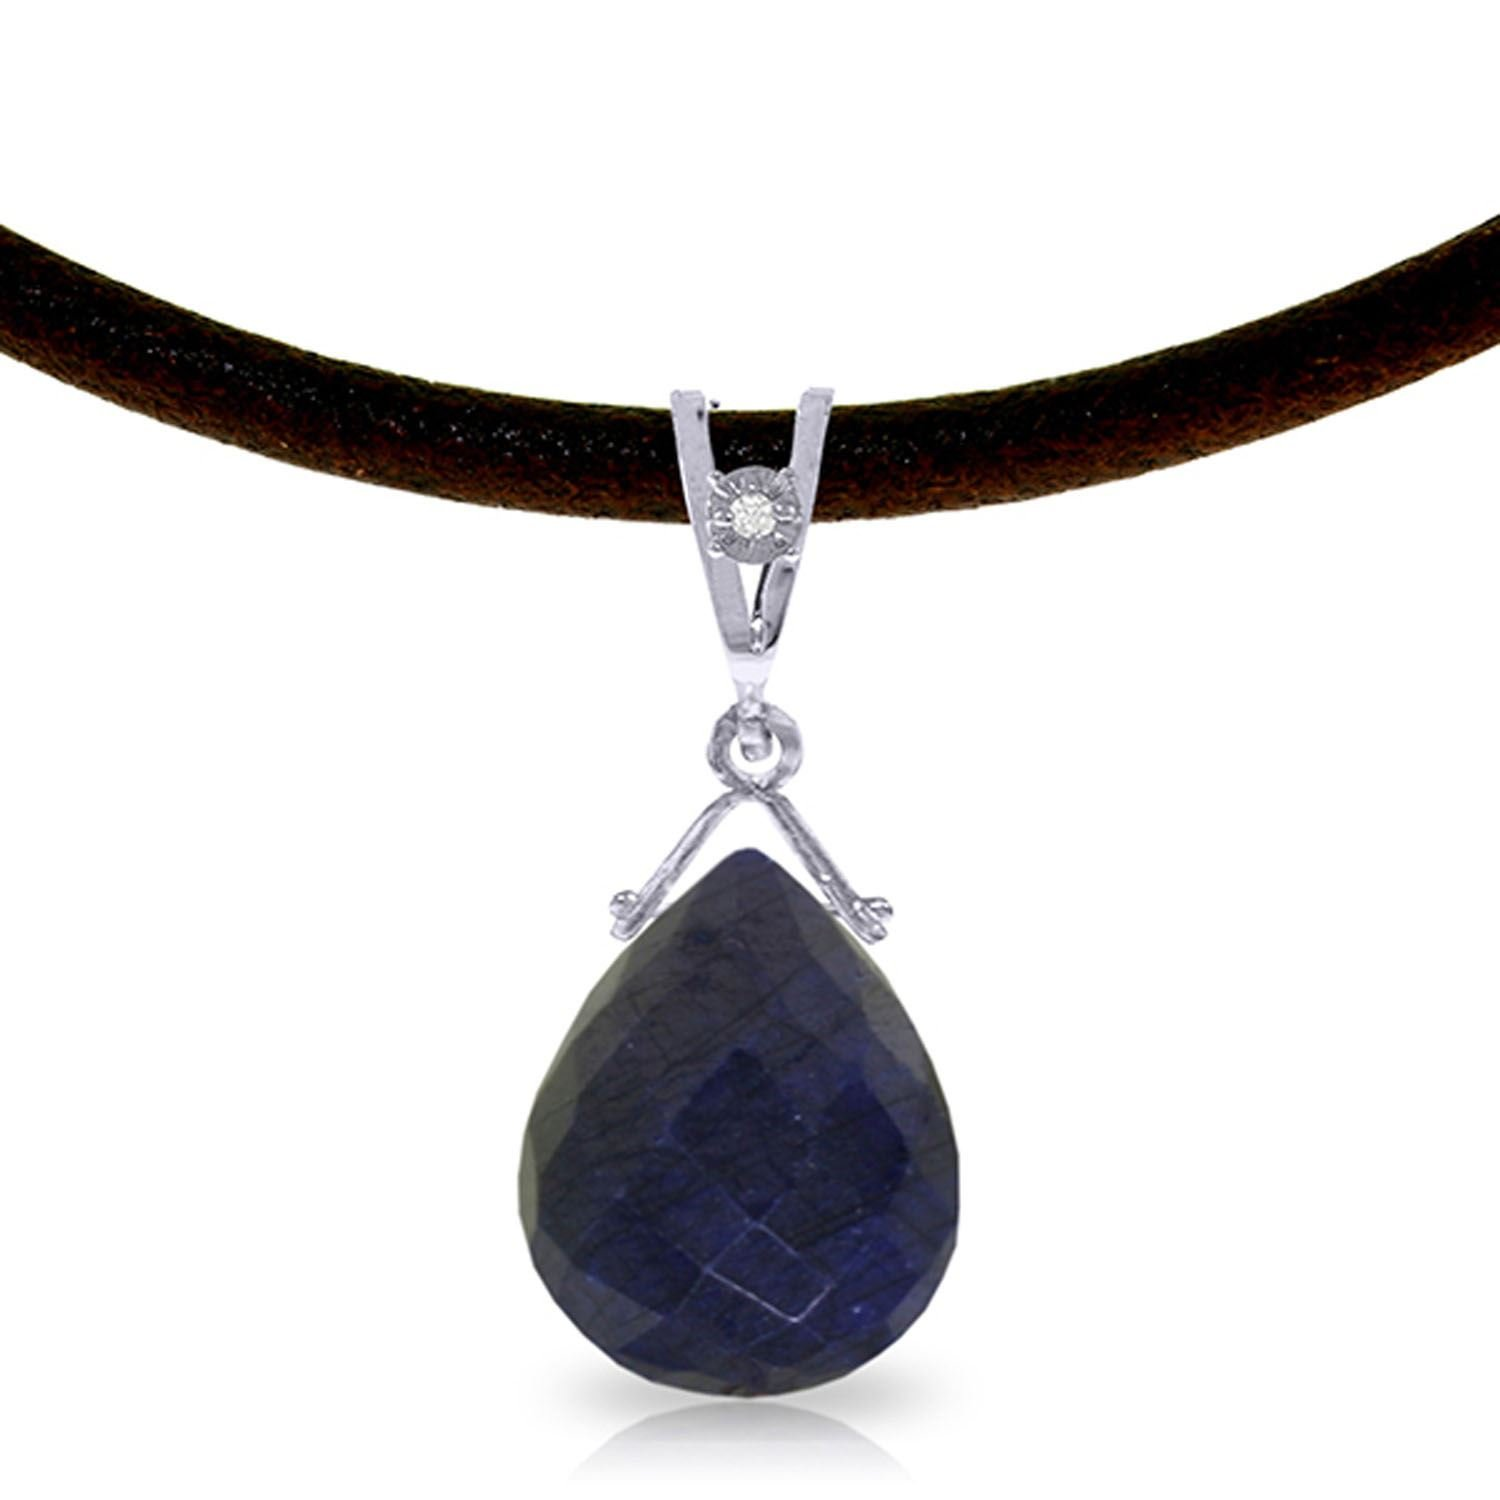 ALARRI 7.81 Carat 14K Solid White Gold Love Sappho Sapphire Diamond Necklace with 24 Inch Chain Length